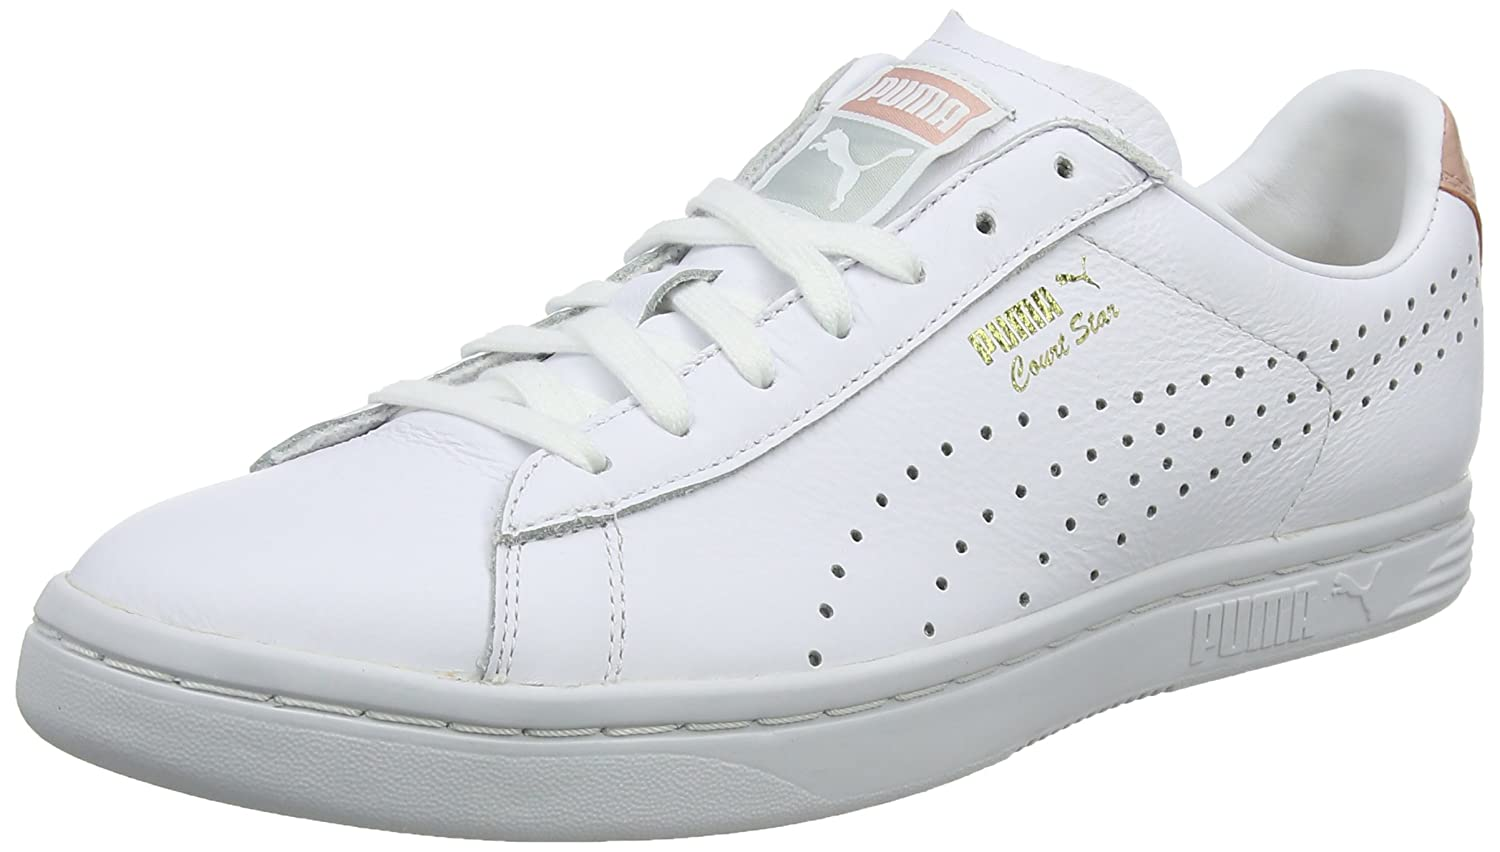 ebdcacbd4af5 PUMA Unisex Adults  Court Star Nm Low-Top Sneakers